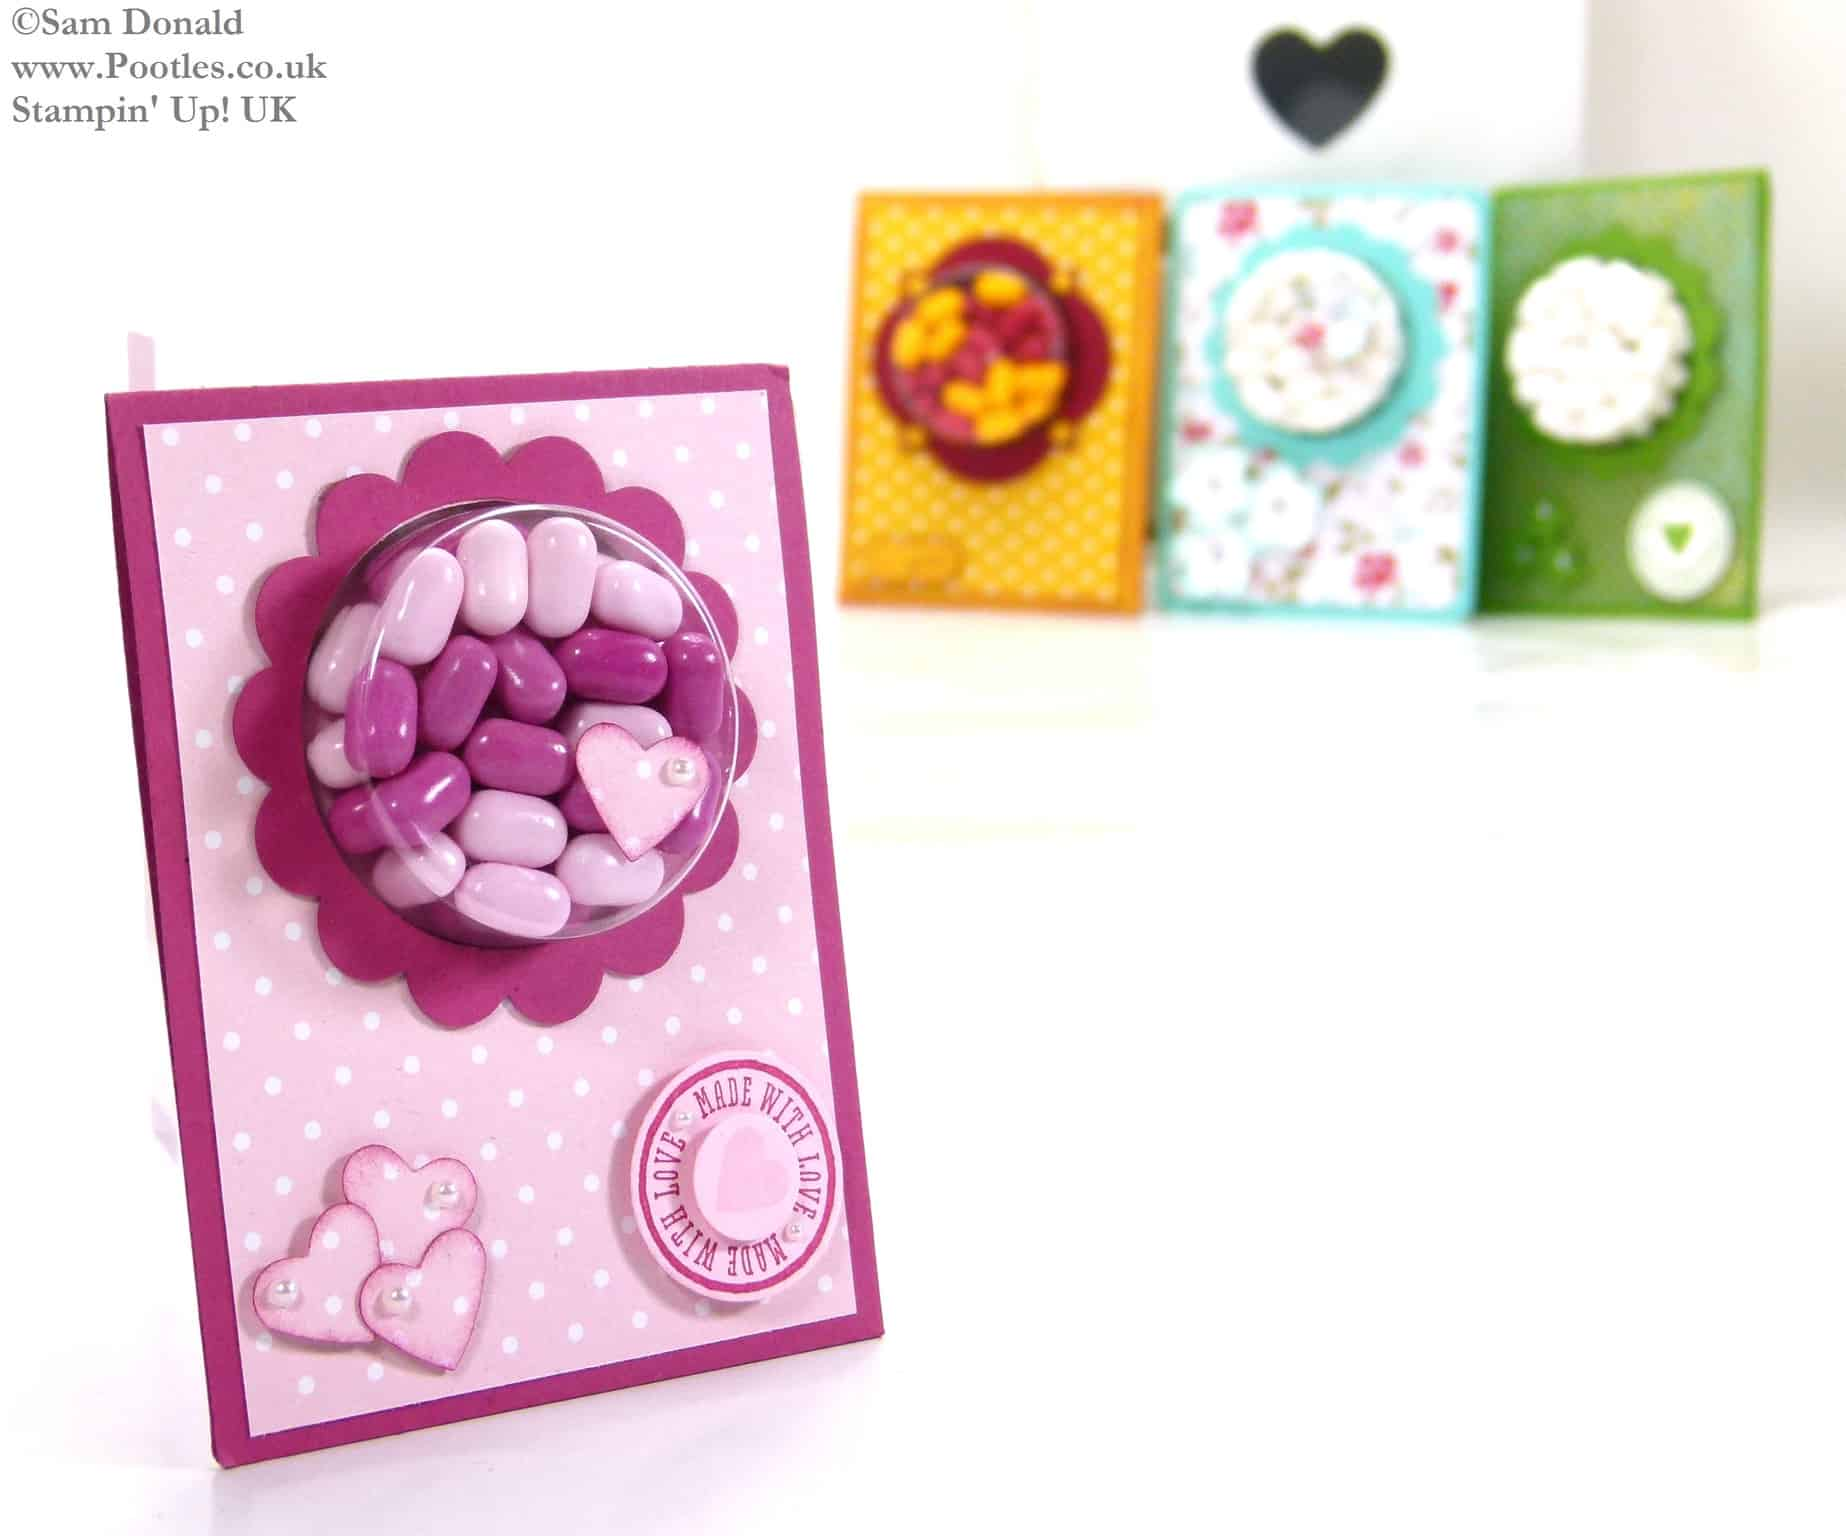 POOTLES Stampin Up UK Tic Tac Sweetie Treat Holder Tutorial 7